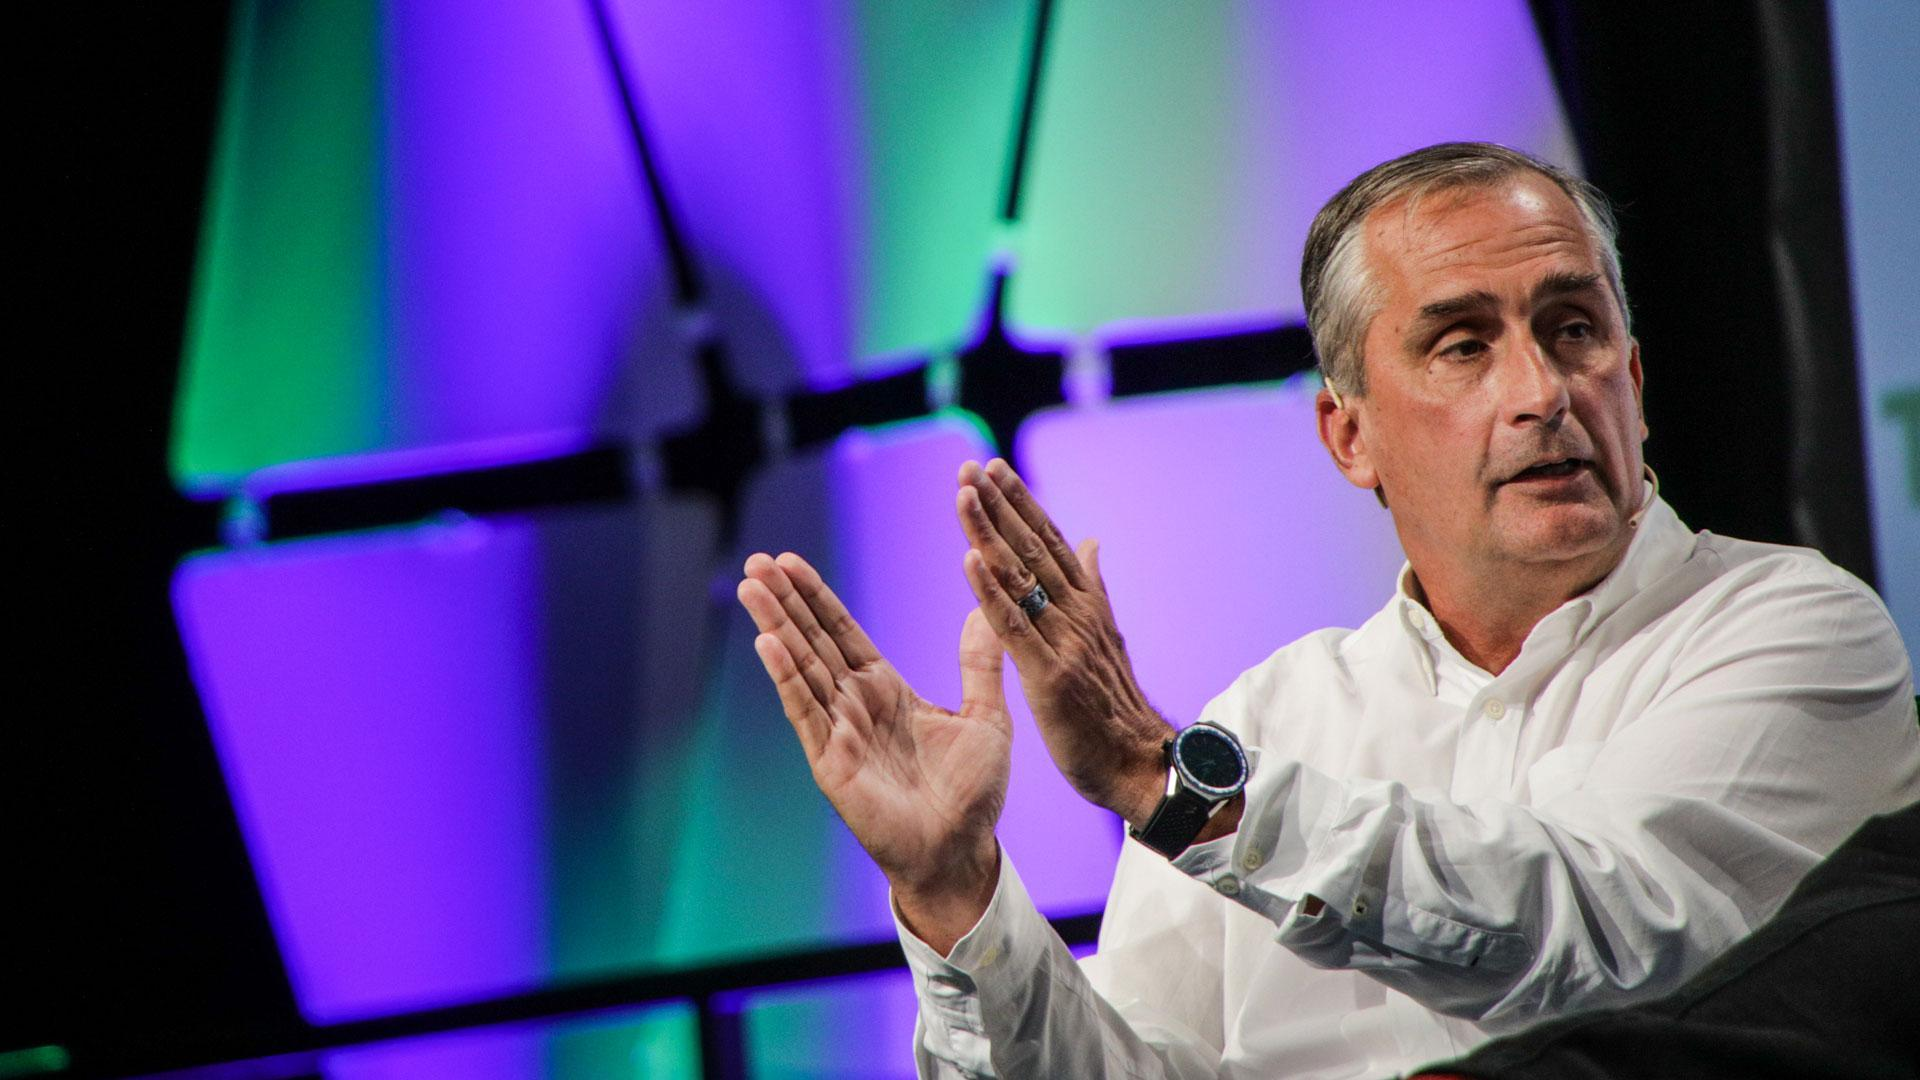 Silicon on Wheels from Intel CEO Brian Krzanich